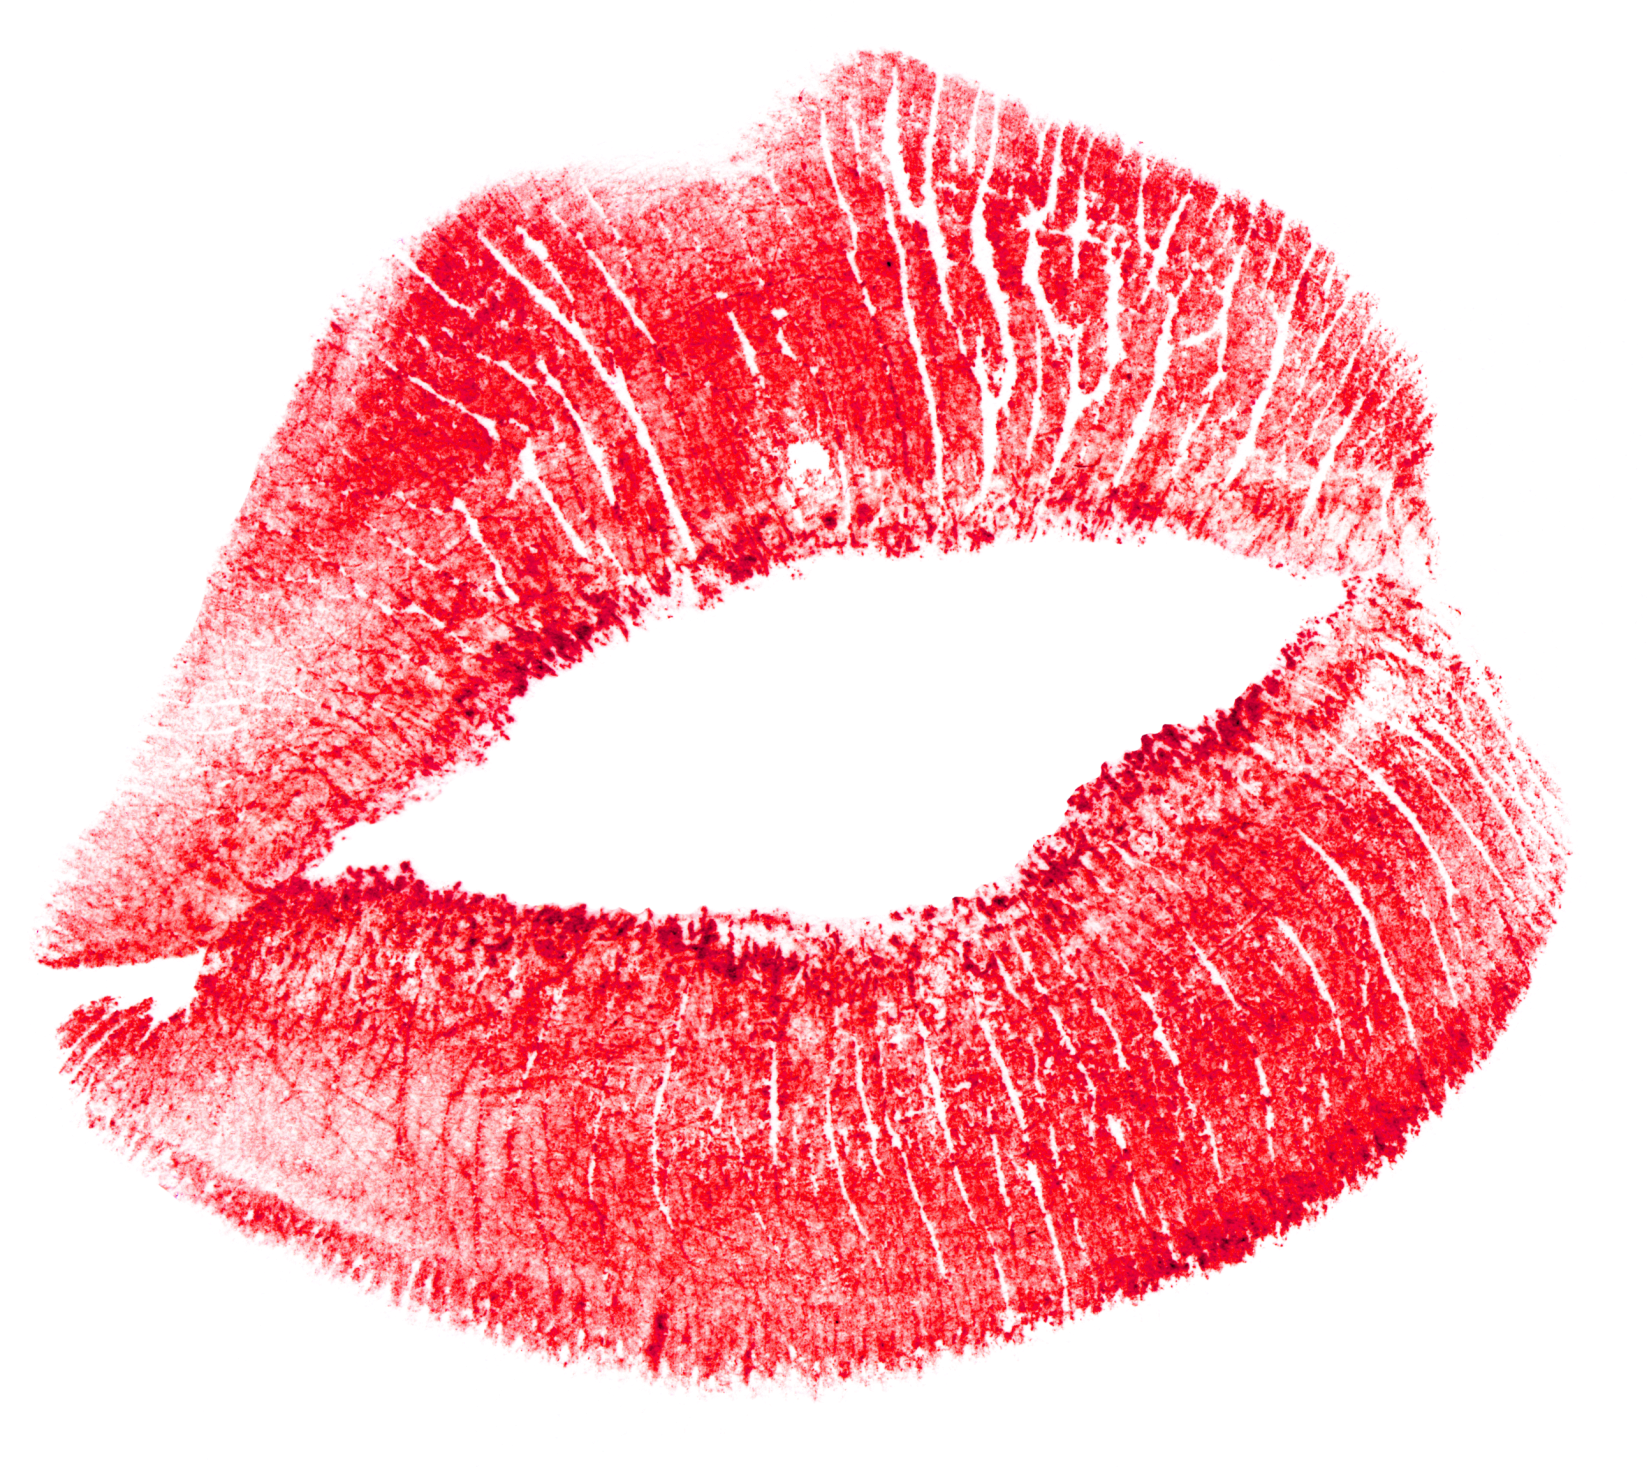 Kiss clipart lip stain. Lips png t shirt